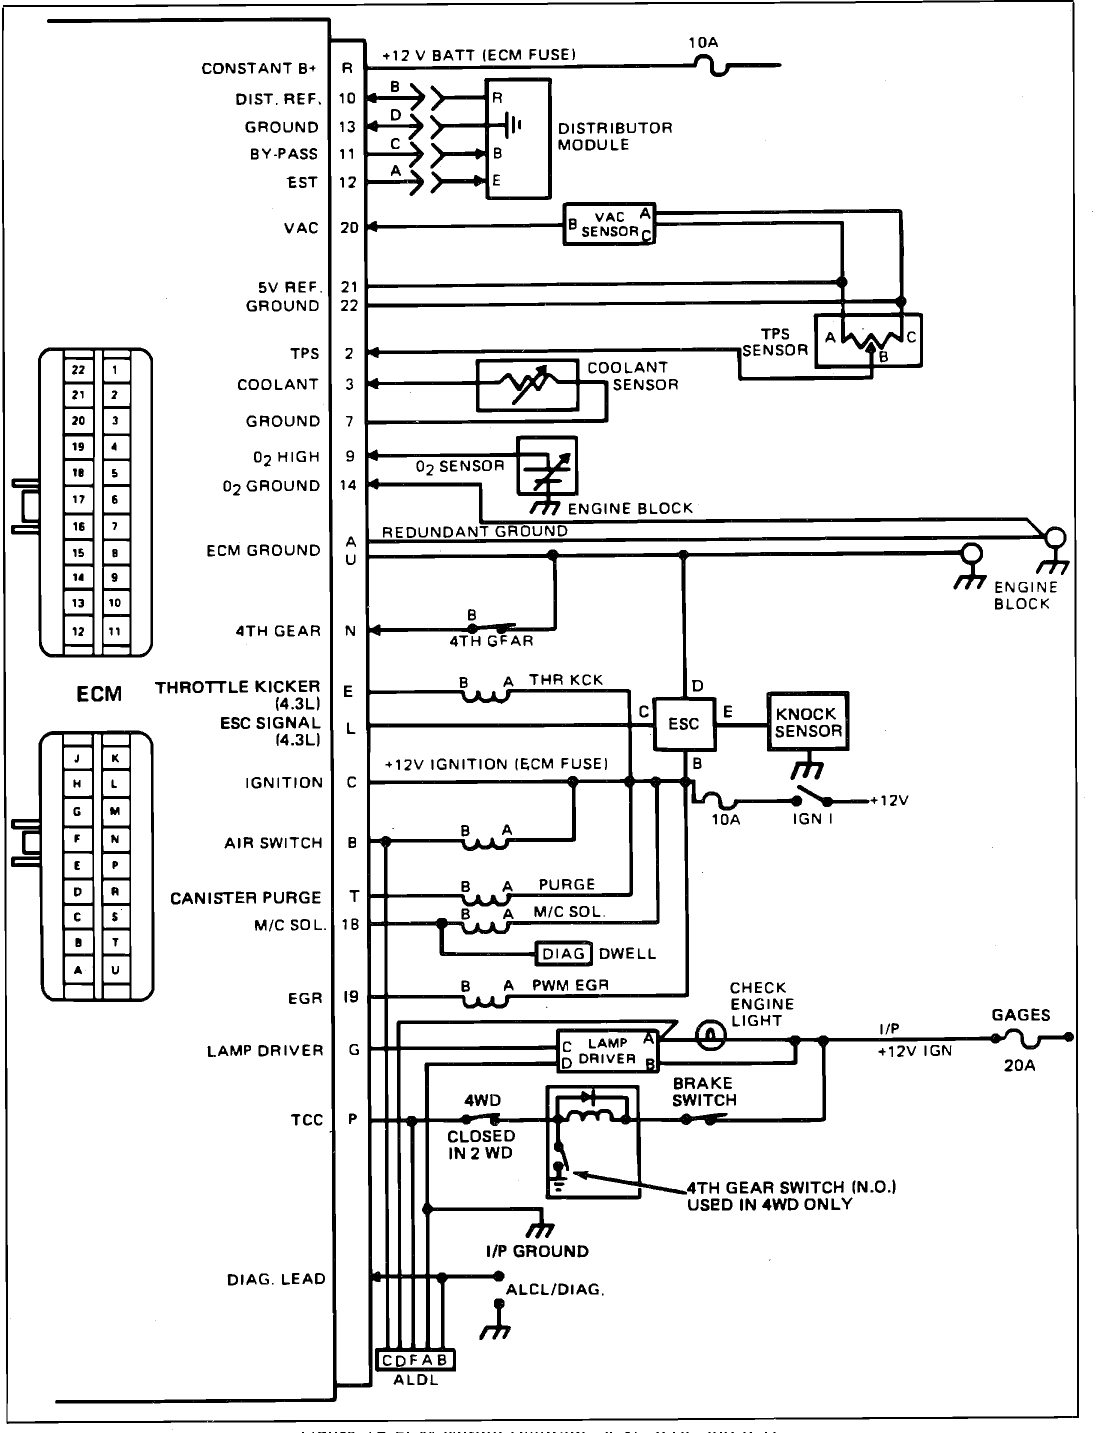 hight resolution of 1995 caprice wiring diagram detailed wiring diagram rh 7 4 ocotillo paysage com 95 chevy caprice ls swap chevy lt1 engine